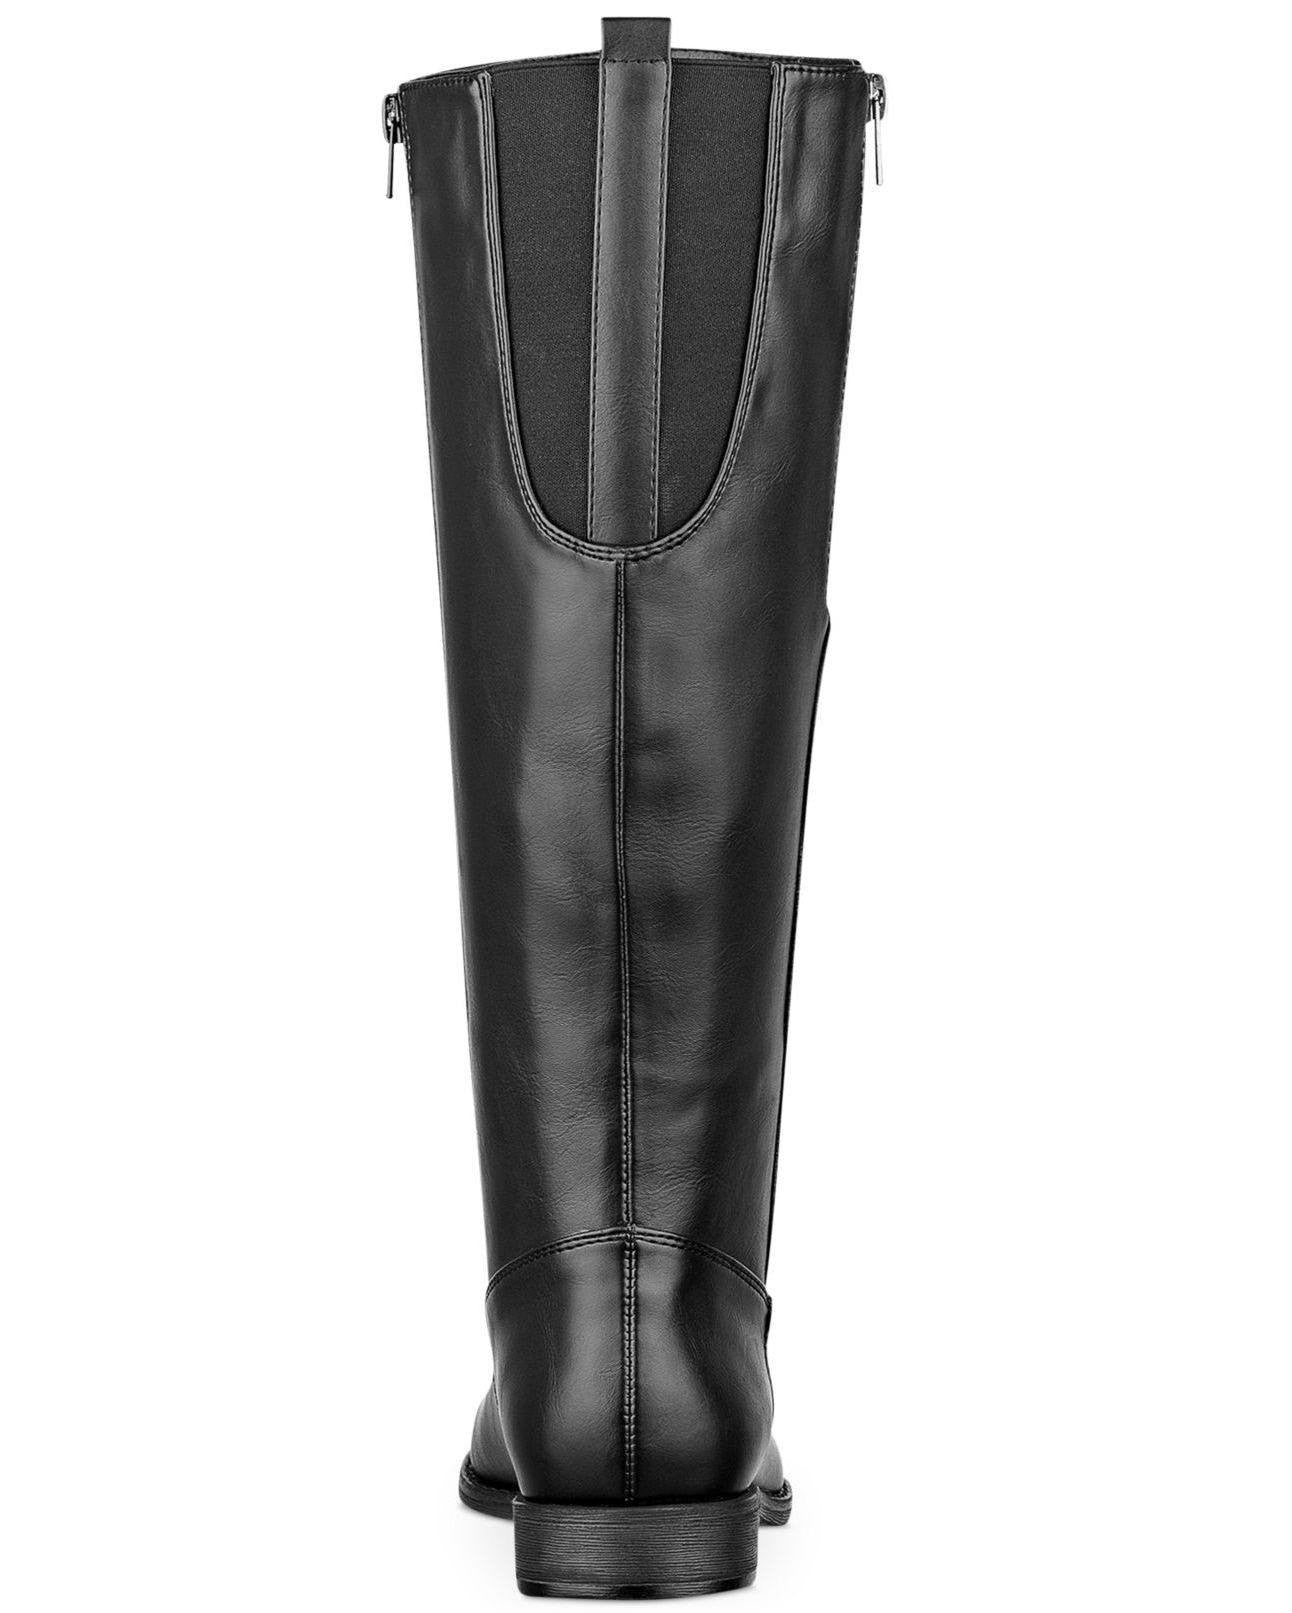 7a0f7be08b95 Pink   Pepper Zip It Tall Shaft Wide Calf Boots-PINK AND PEPPER-Fashionbarn